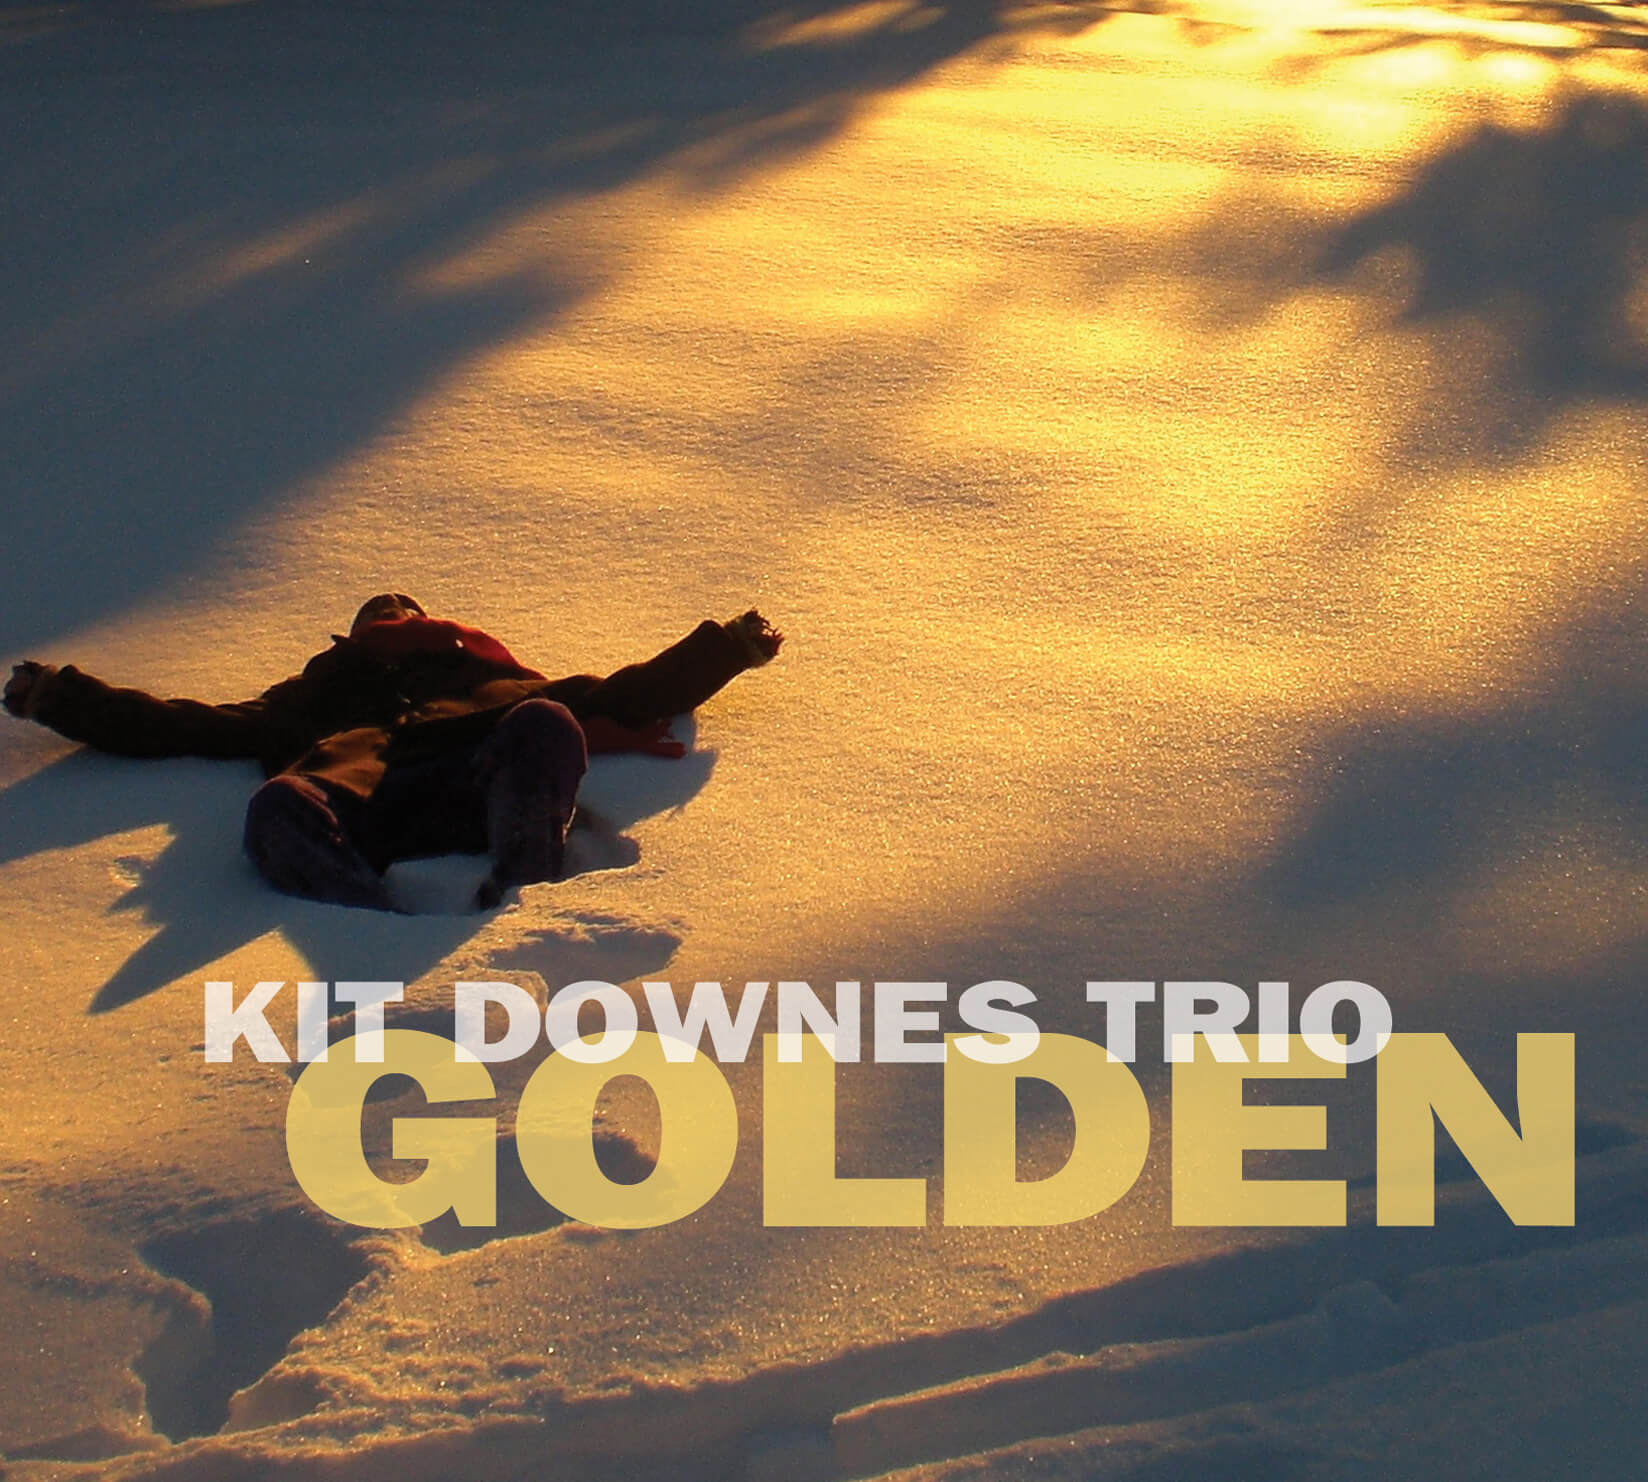 Kit Downes Golden